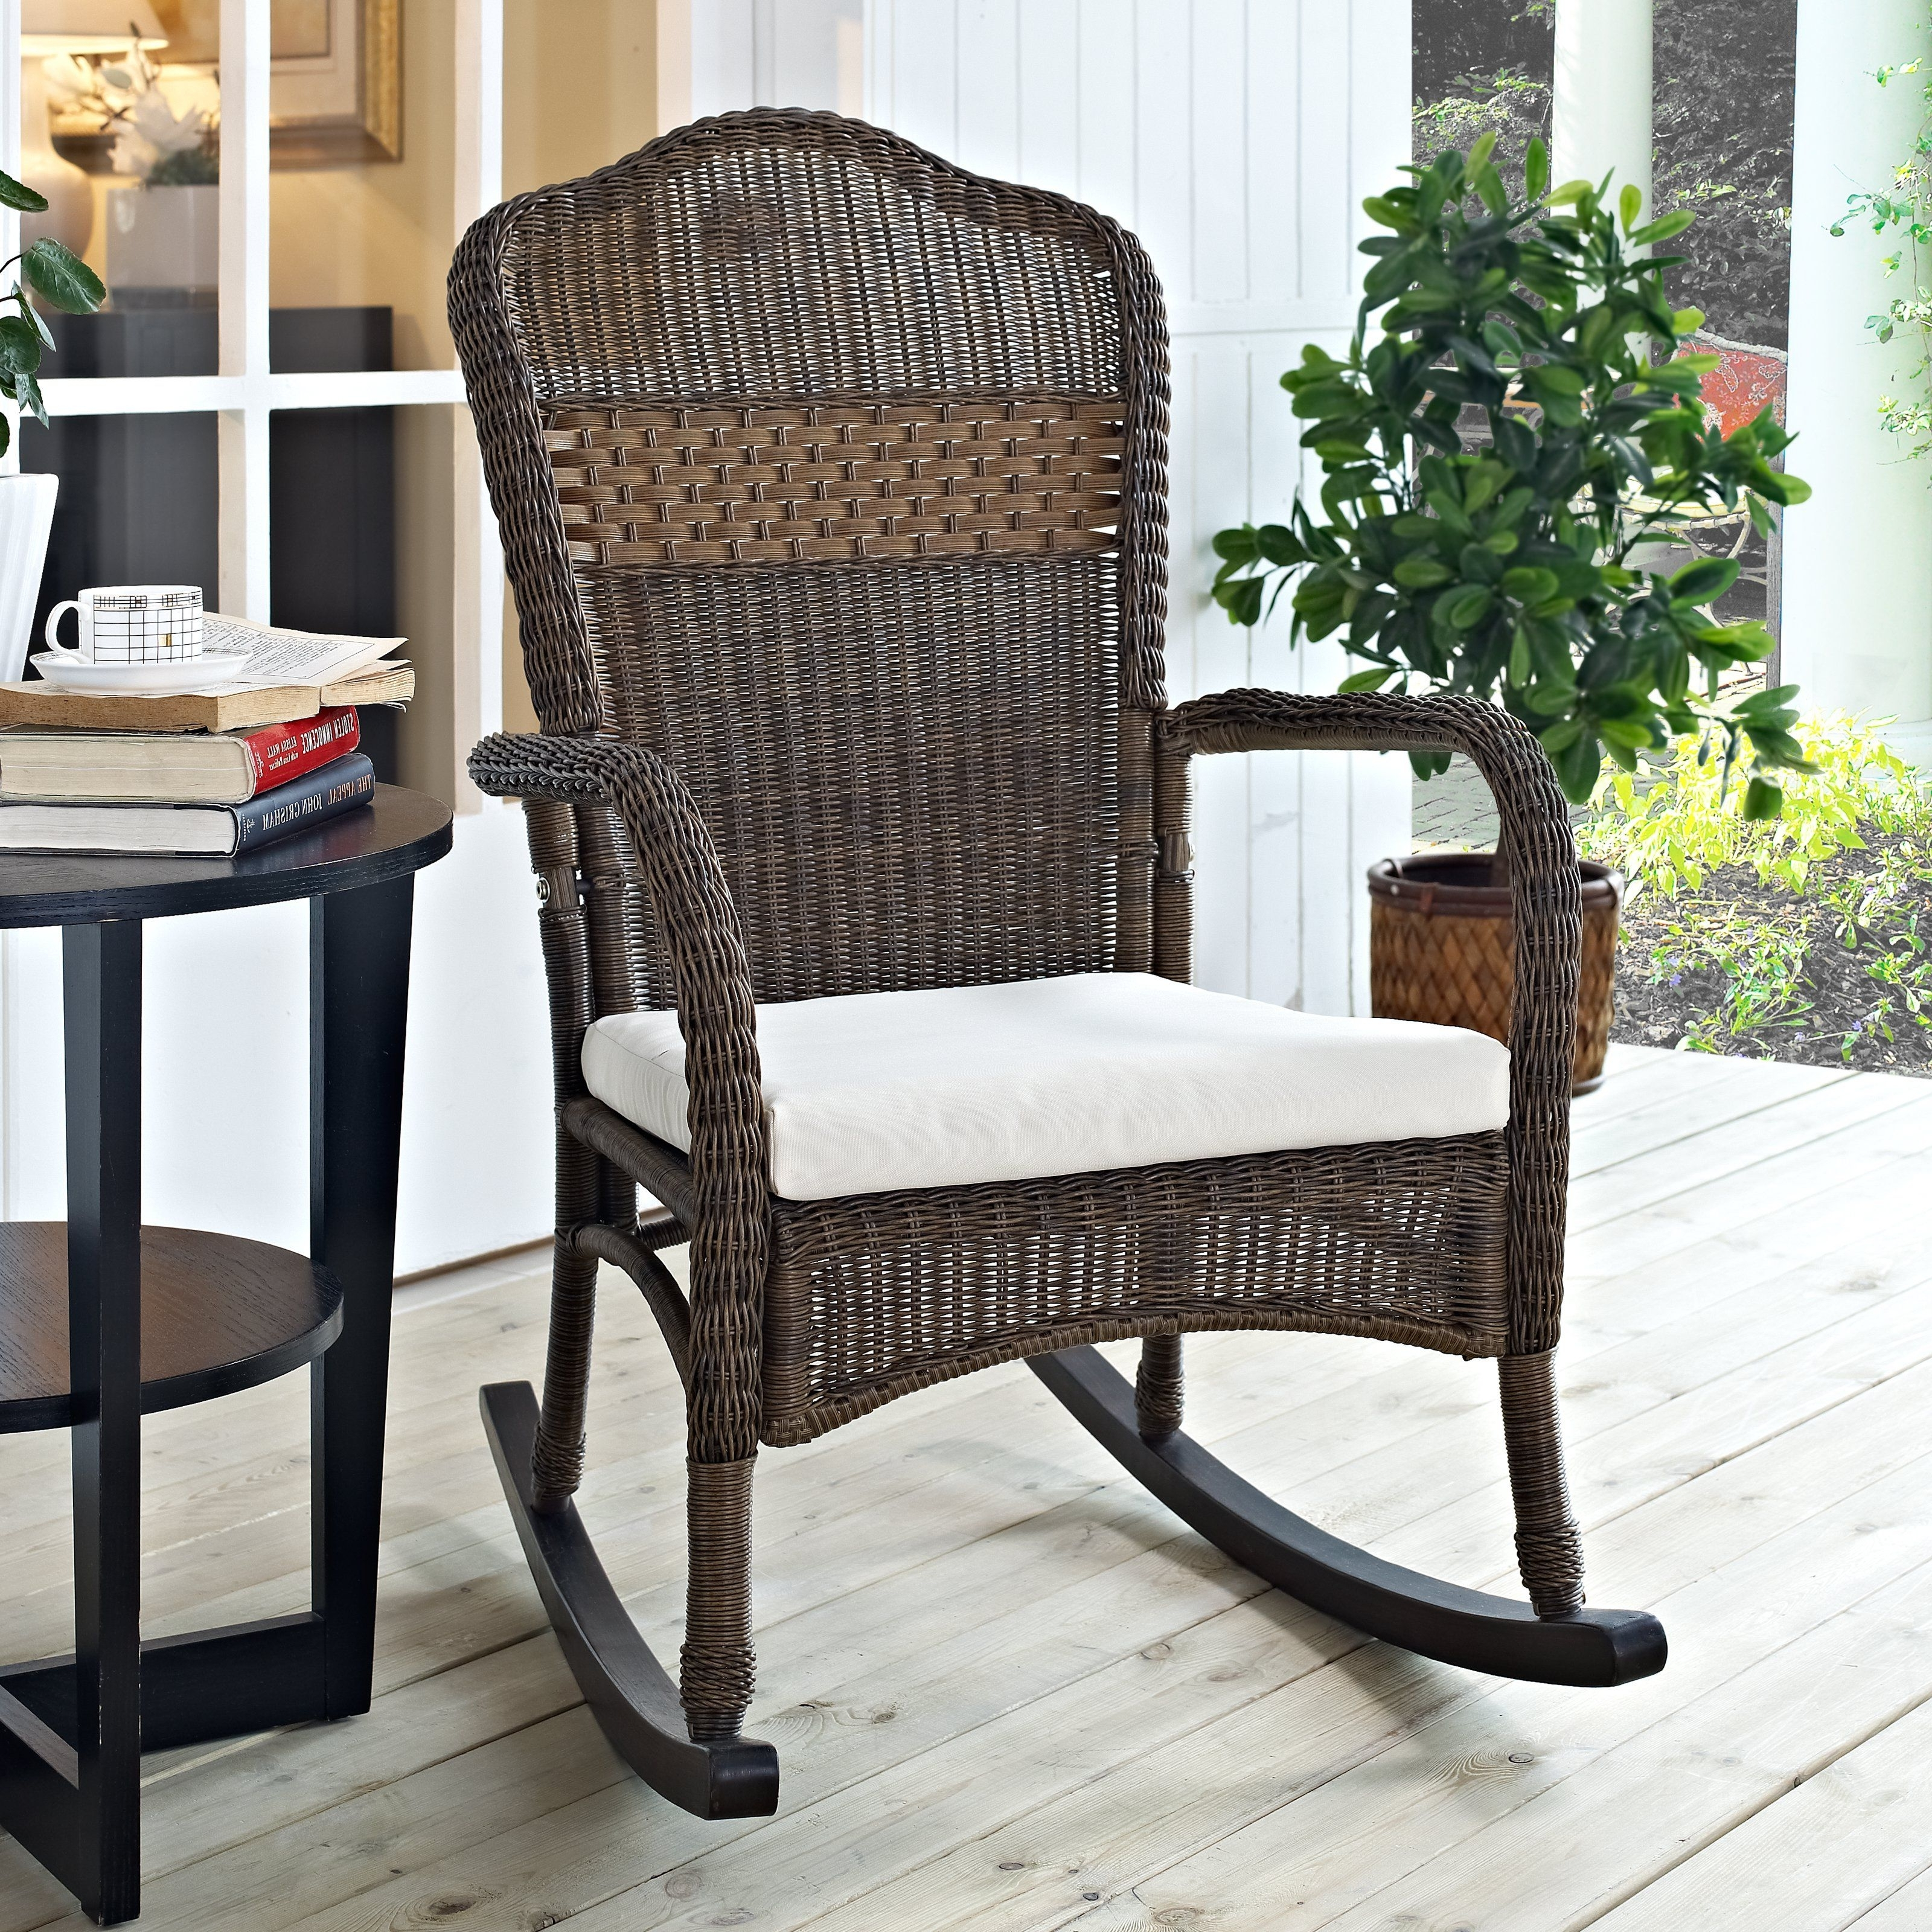 Outdoor Coral Coast Mocha Resin Wicker Rocking Chair With Beige Regarding Latest Wicker Rocking Chairs With Cushions (View 8 of 15)